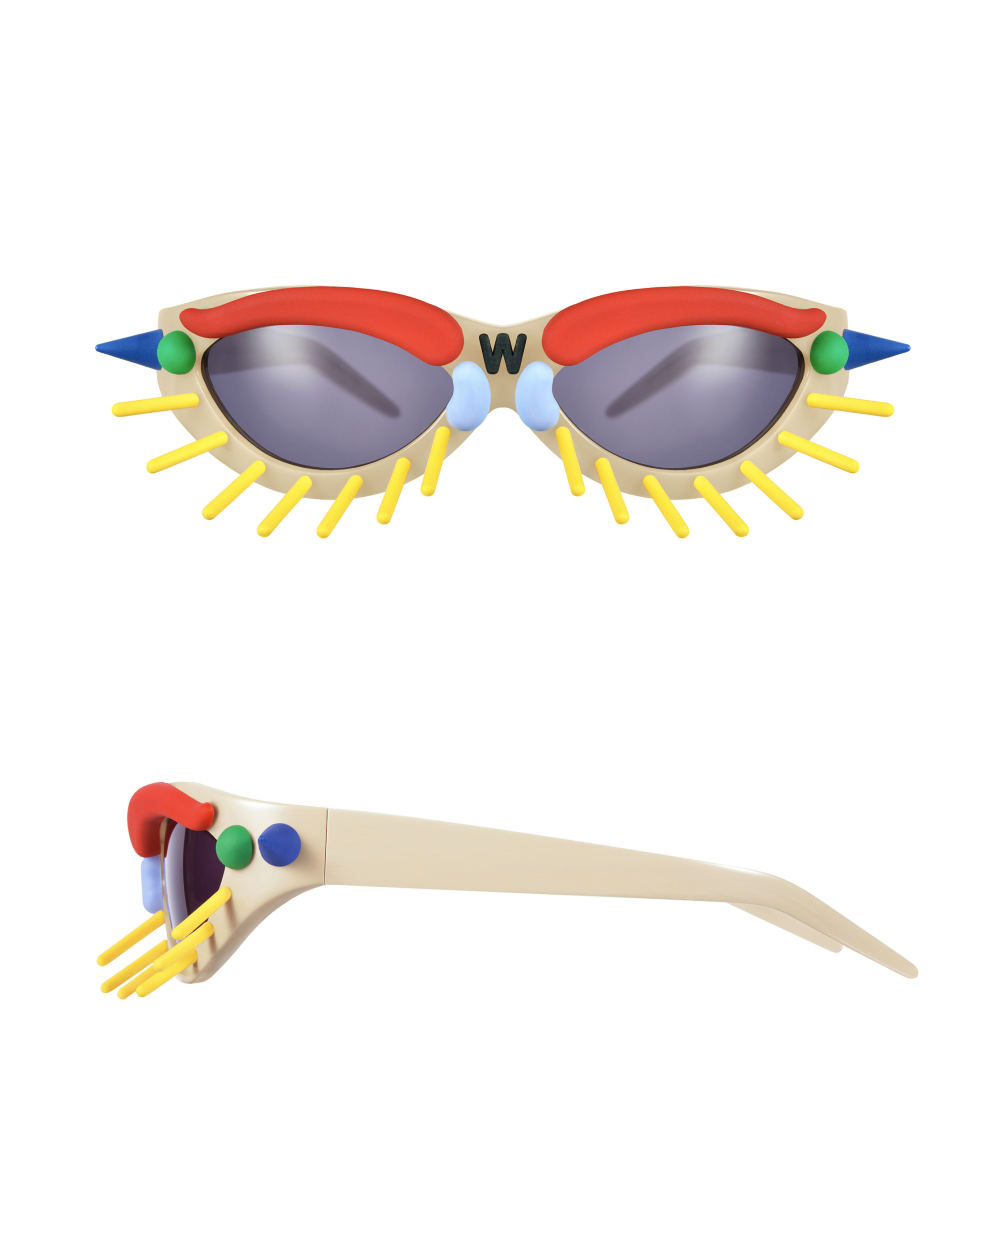 Toy Glasses Model 1. Skin tone with coloured pins